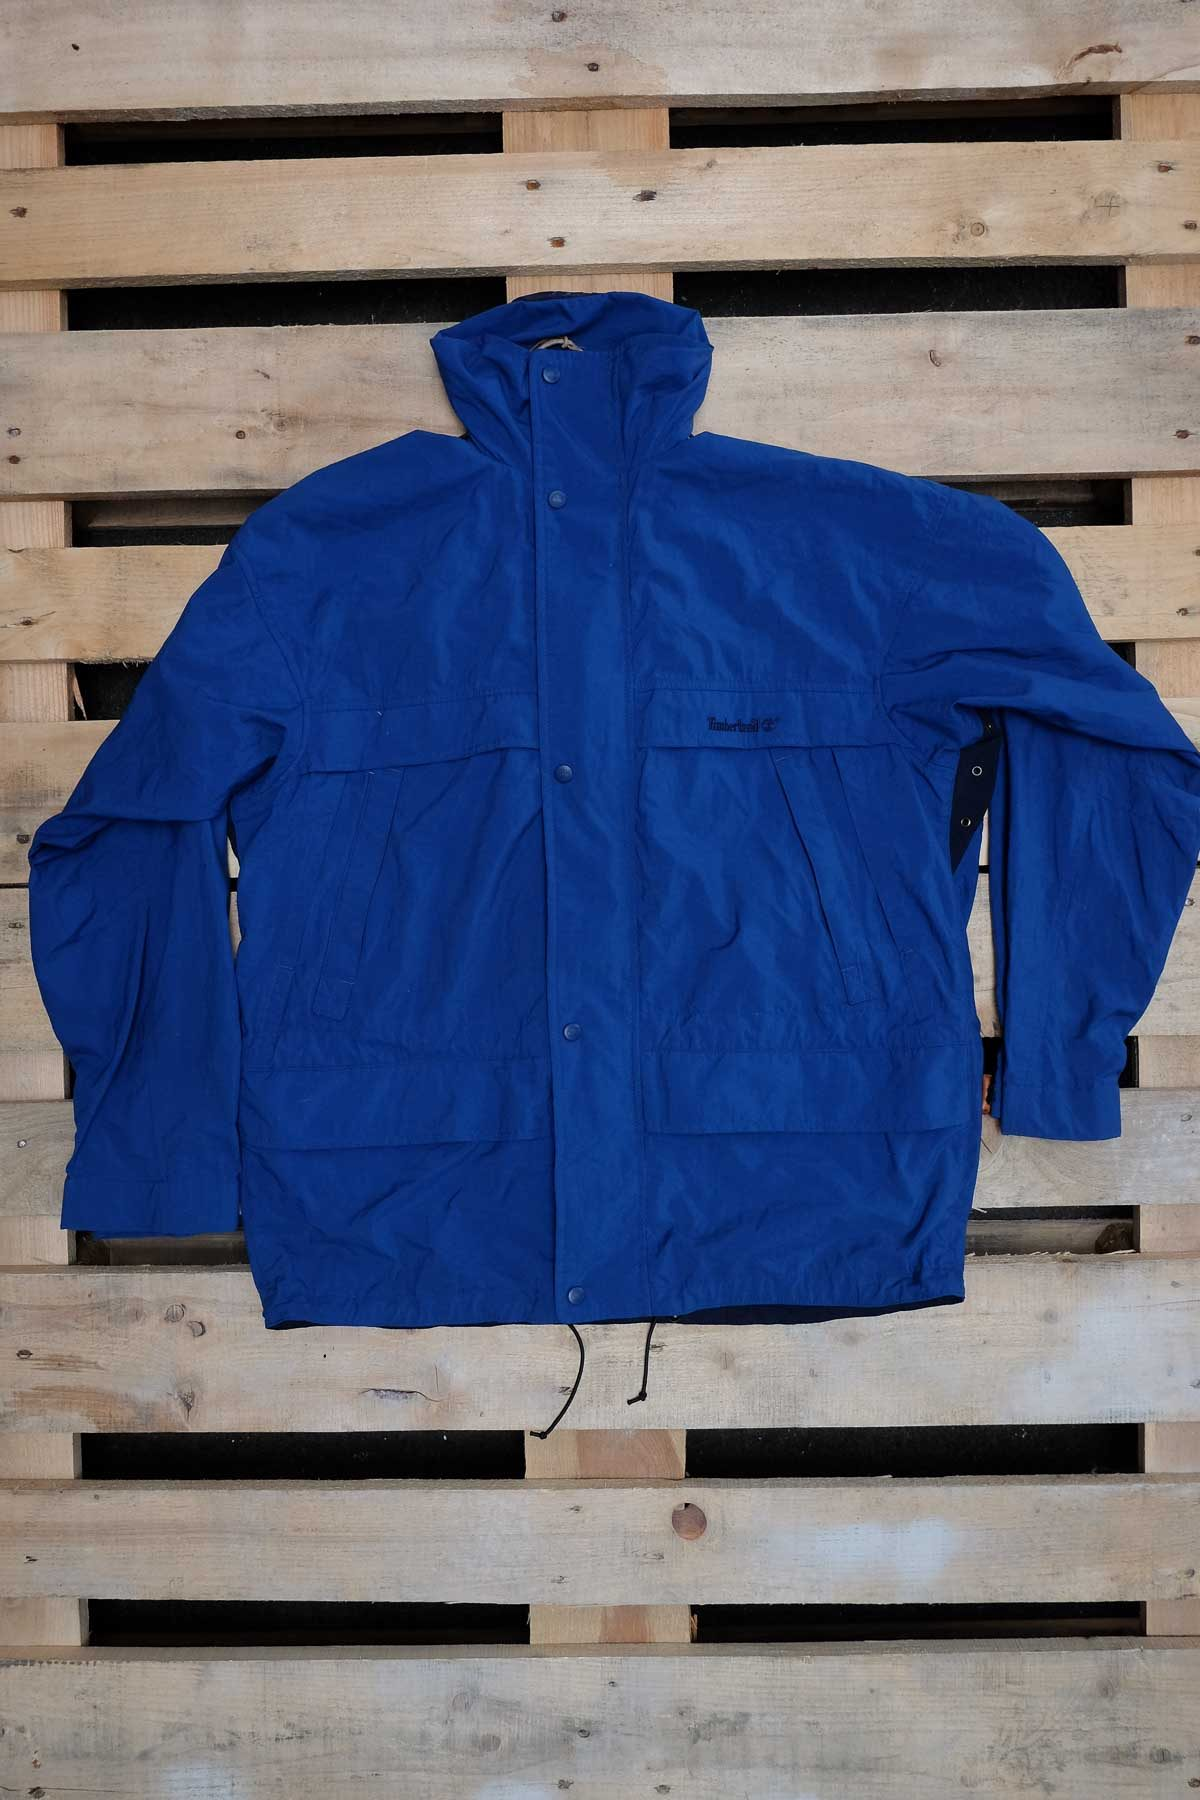 Timberland GIACCA VINTAGE Blue M